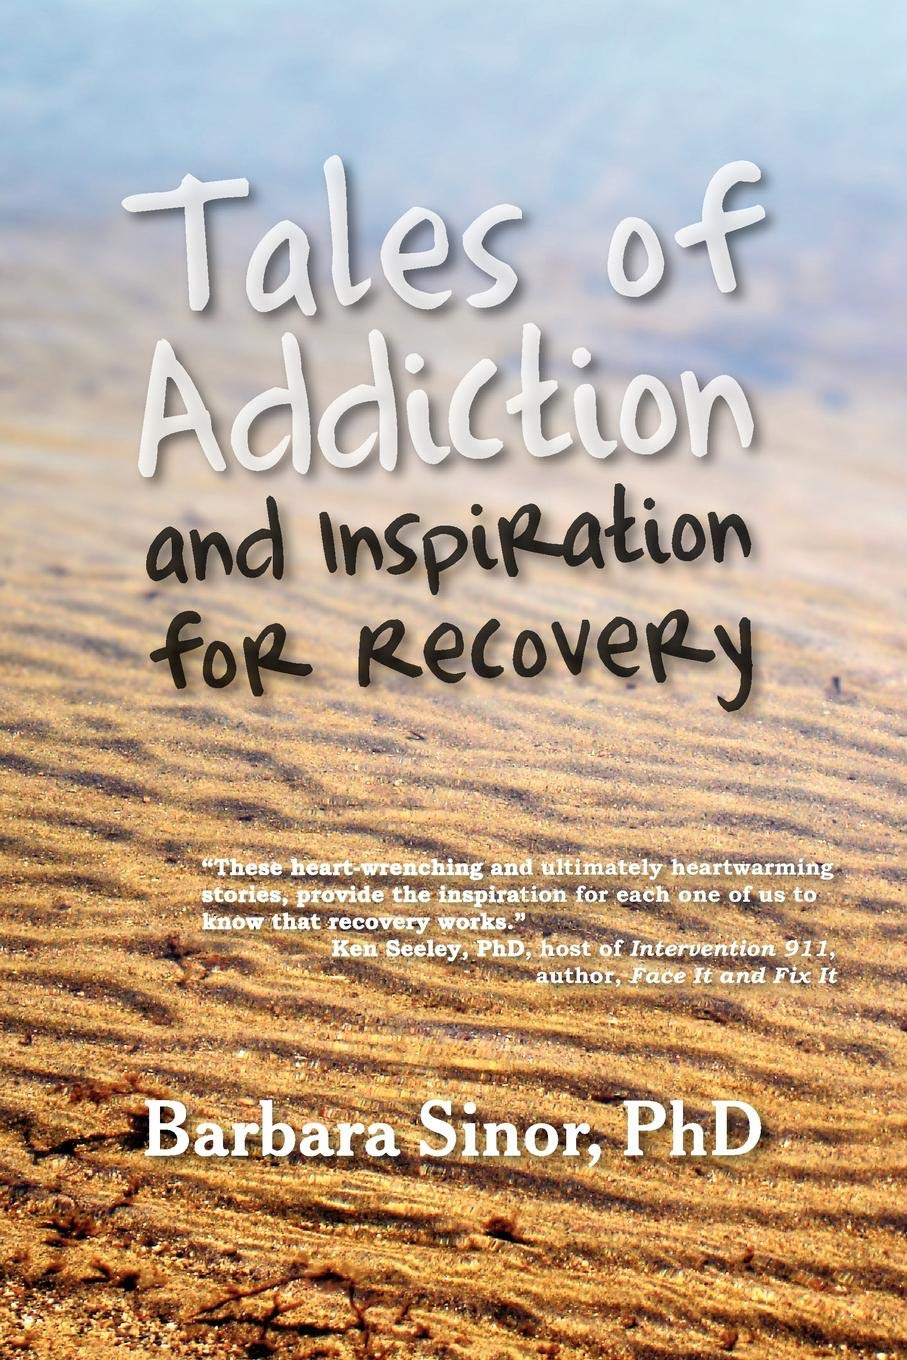 Tales of Addiction and Inspiration for Recovery: Twenty True Stories from the Soul (Reflections of America) PDF